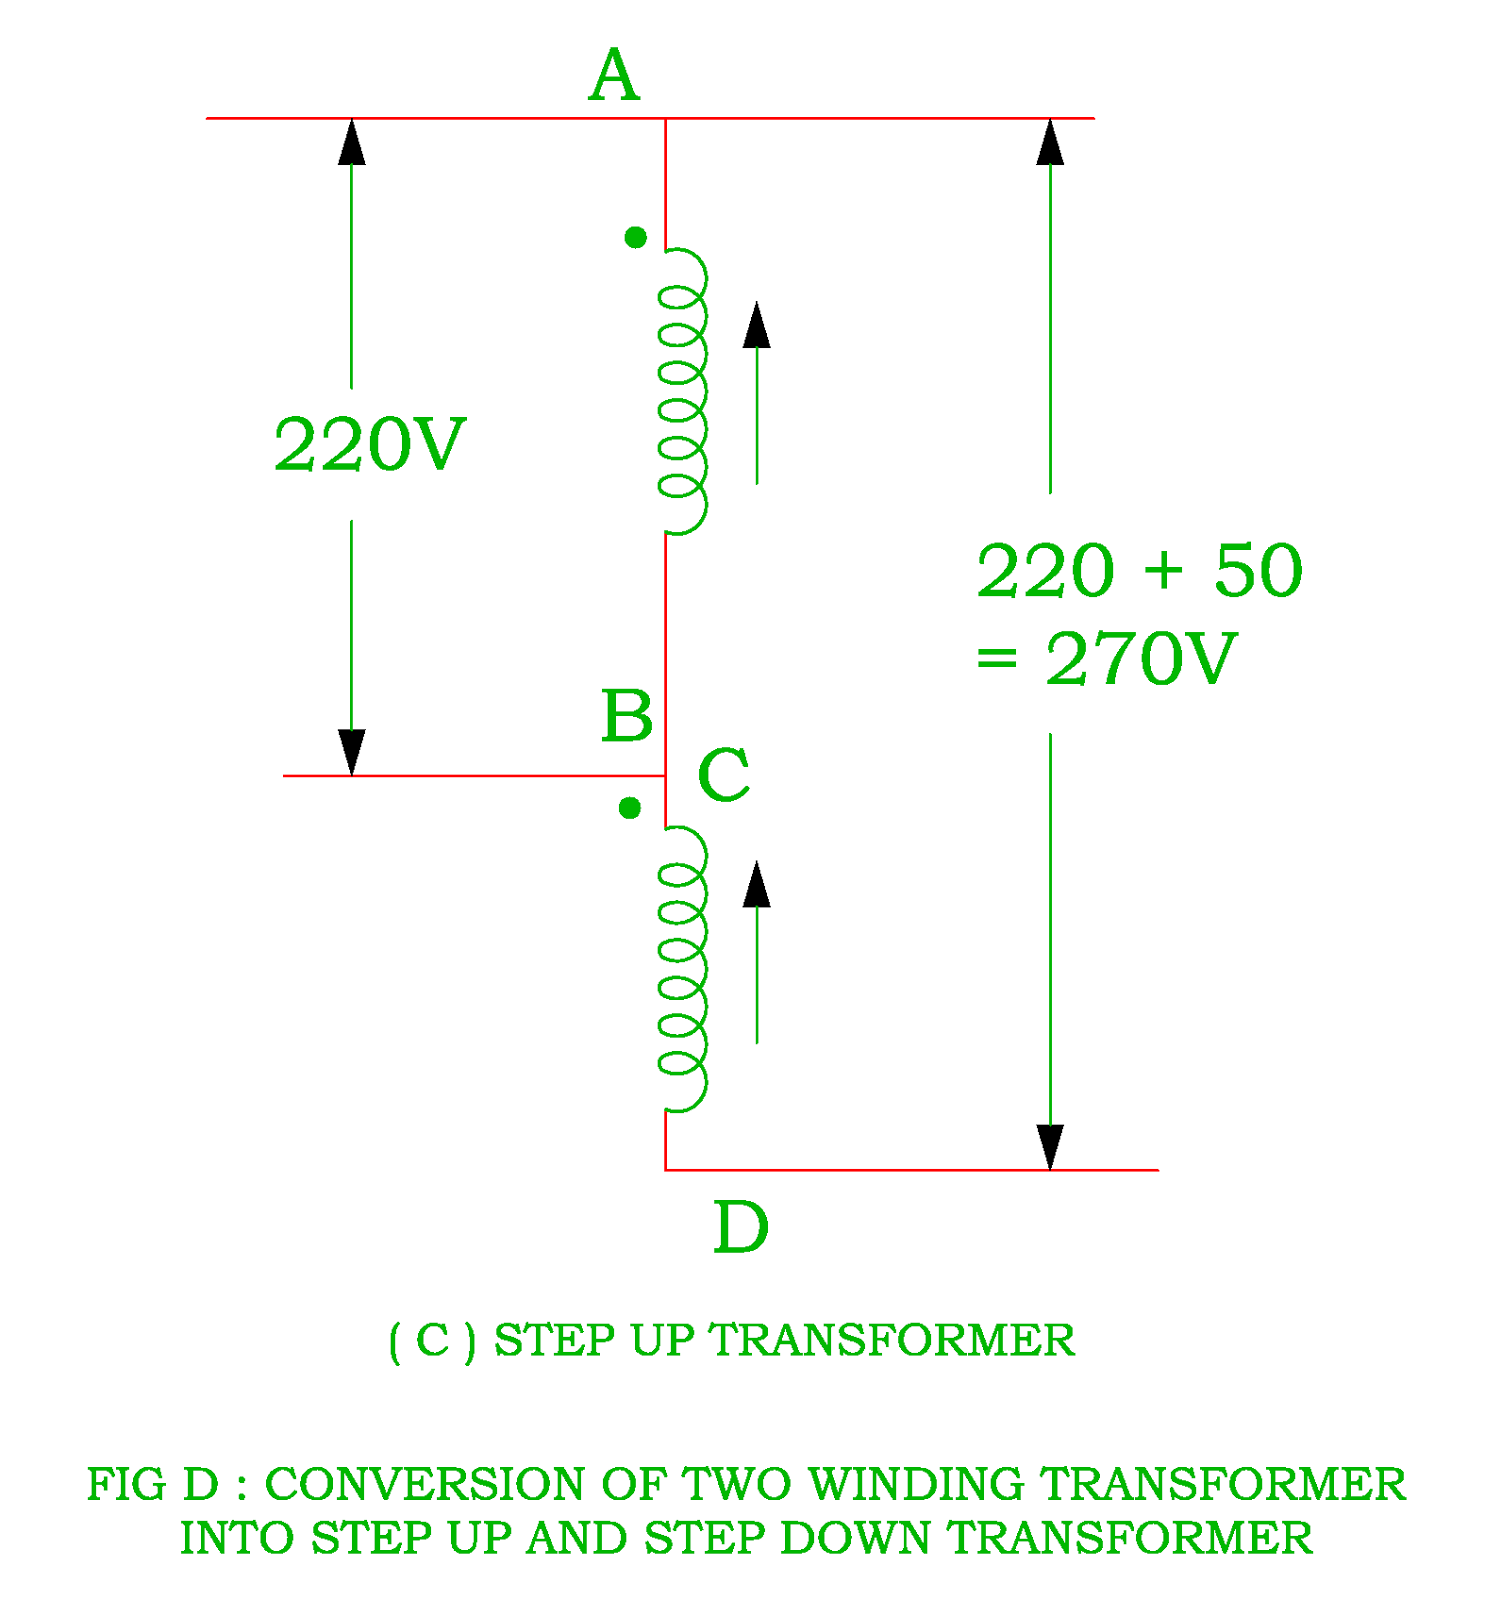 Auto Transformer Korndrfer Autotransformer Starter Wikipedia The Free Encyclopedia Conversion Of Two Winding Into Step Up 1501x1600